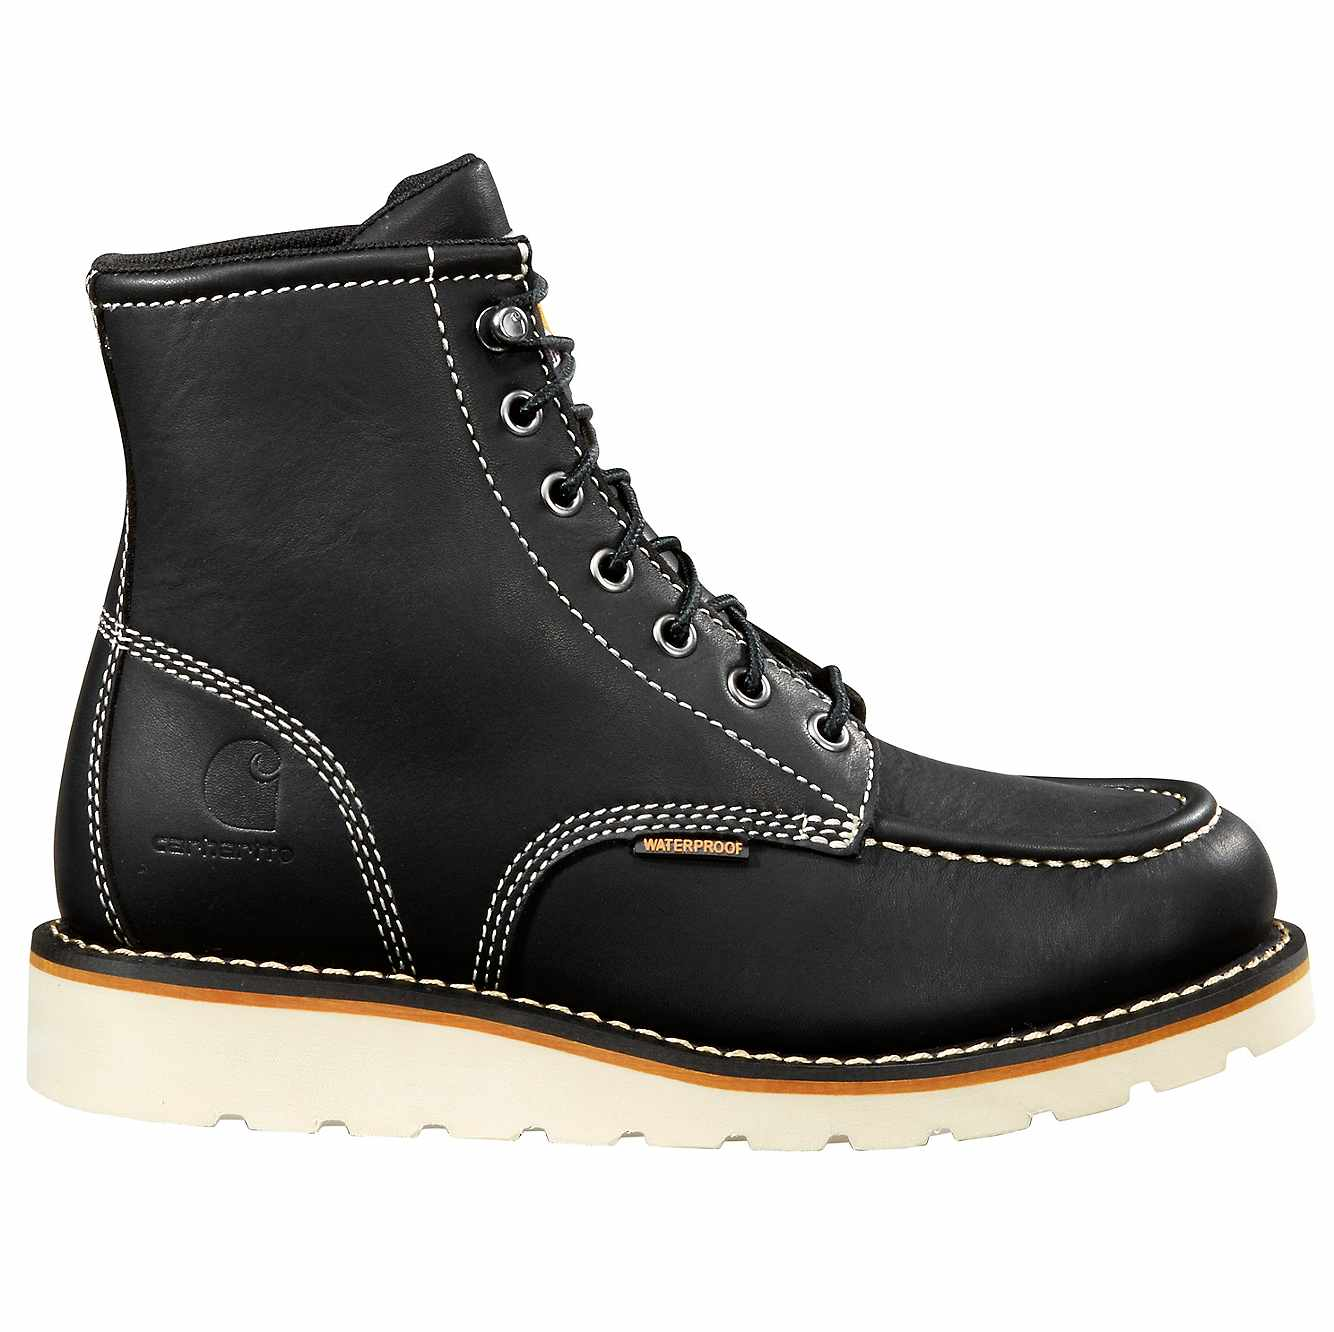 Picture of 6-Inch Non-Safety Toe Wedge Boot in Black Oil Tanned